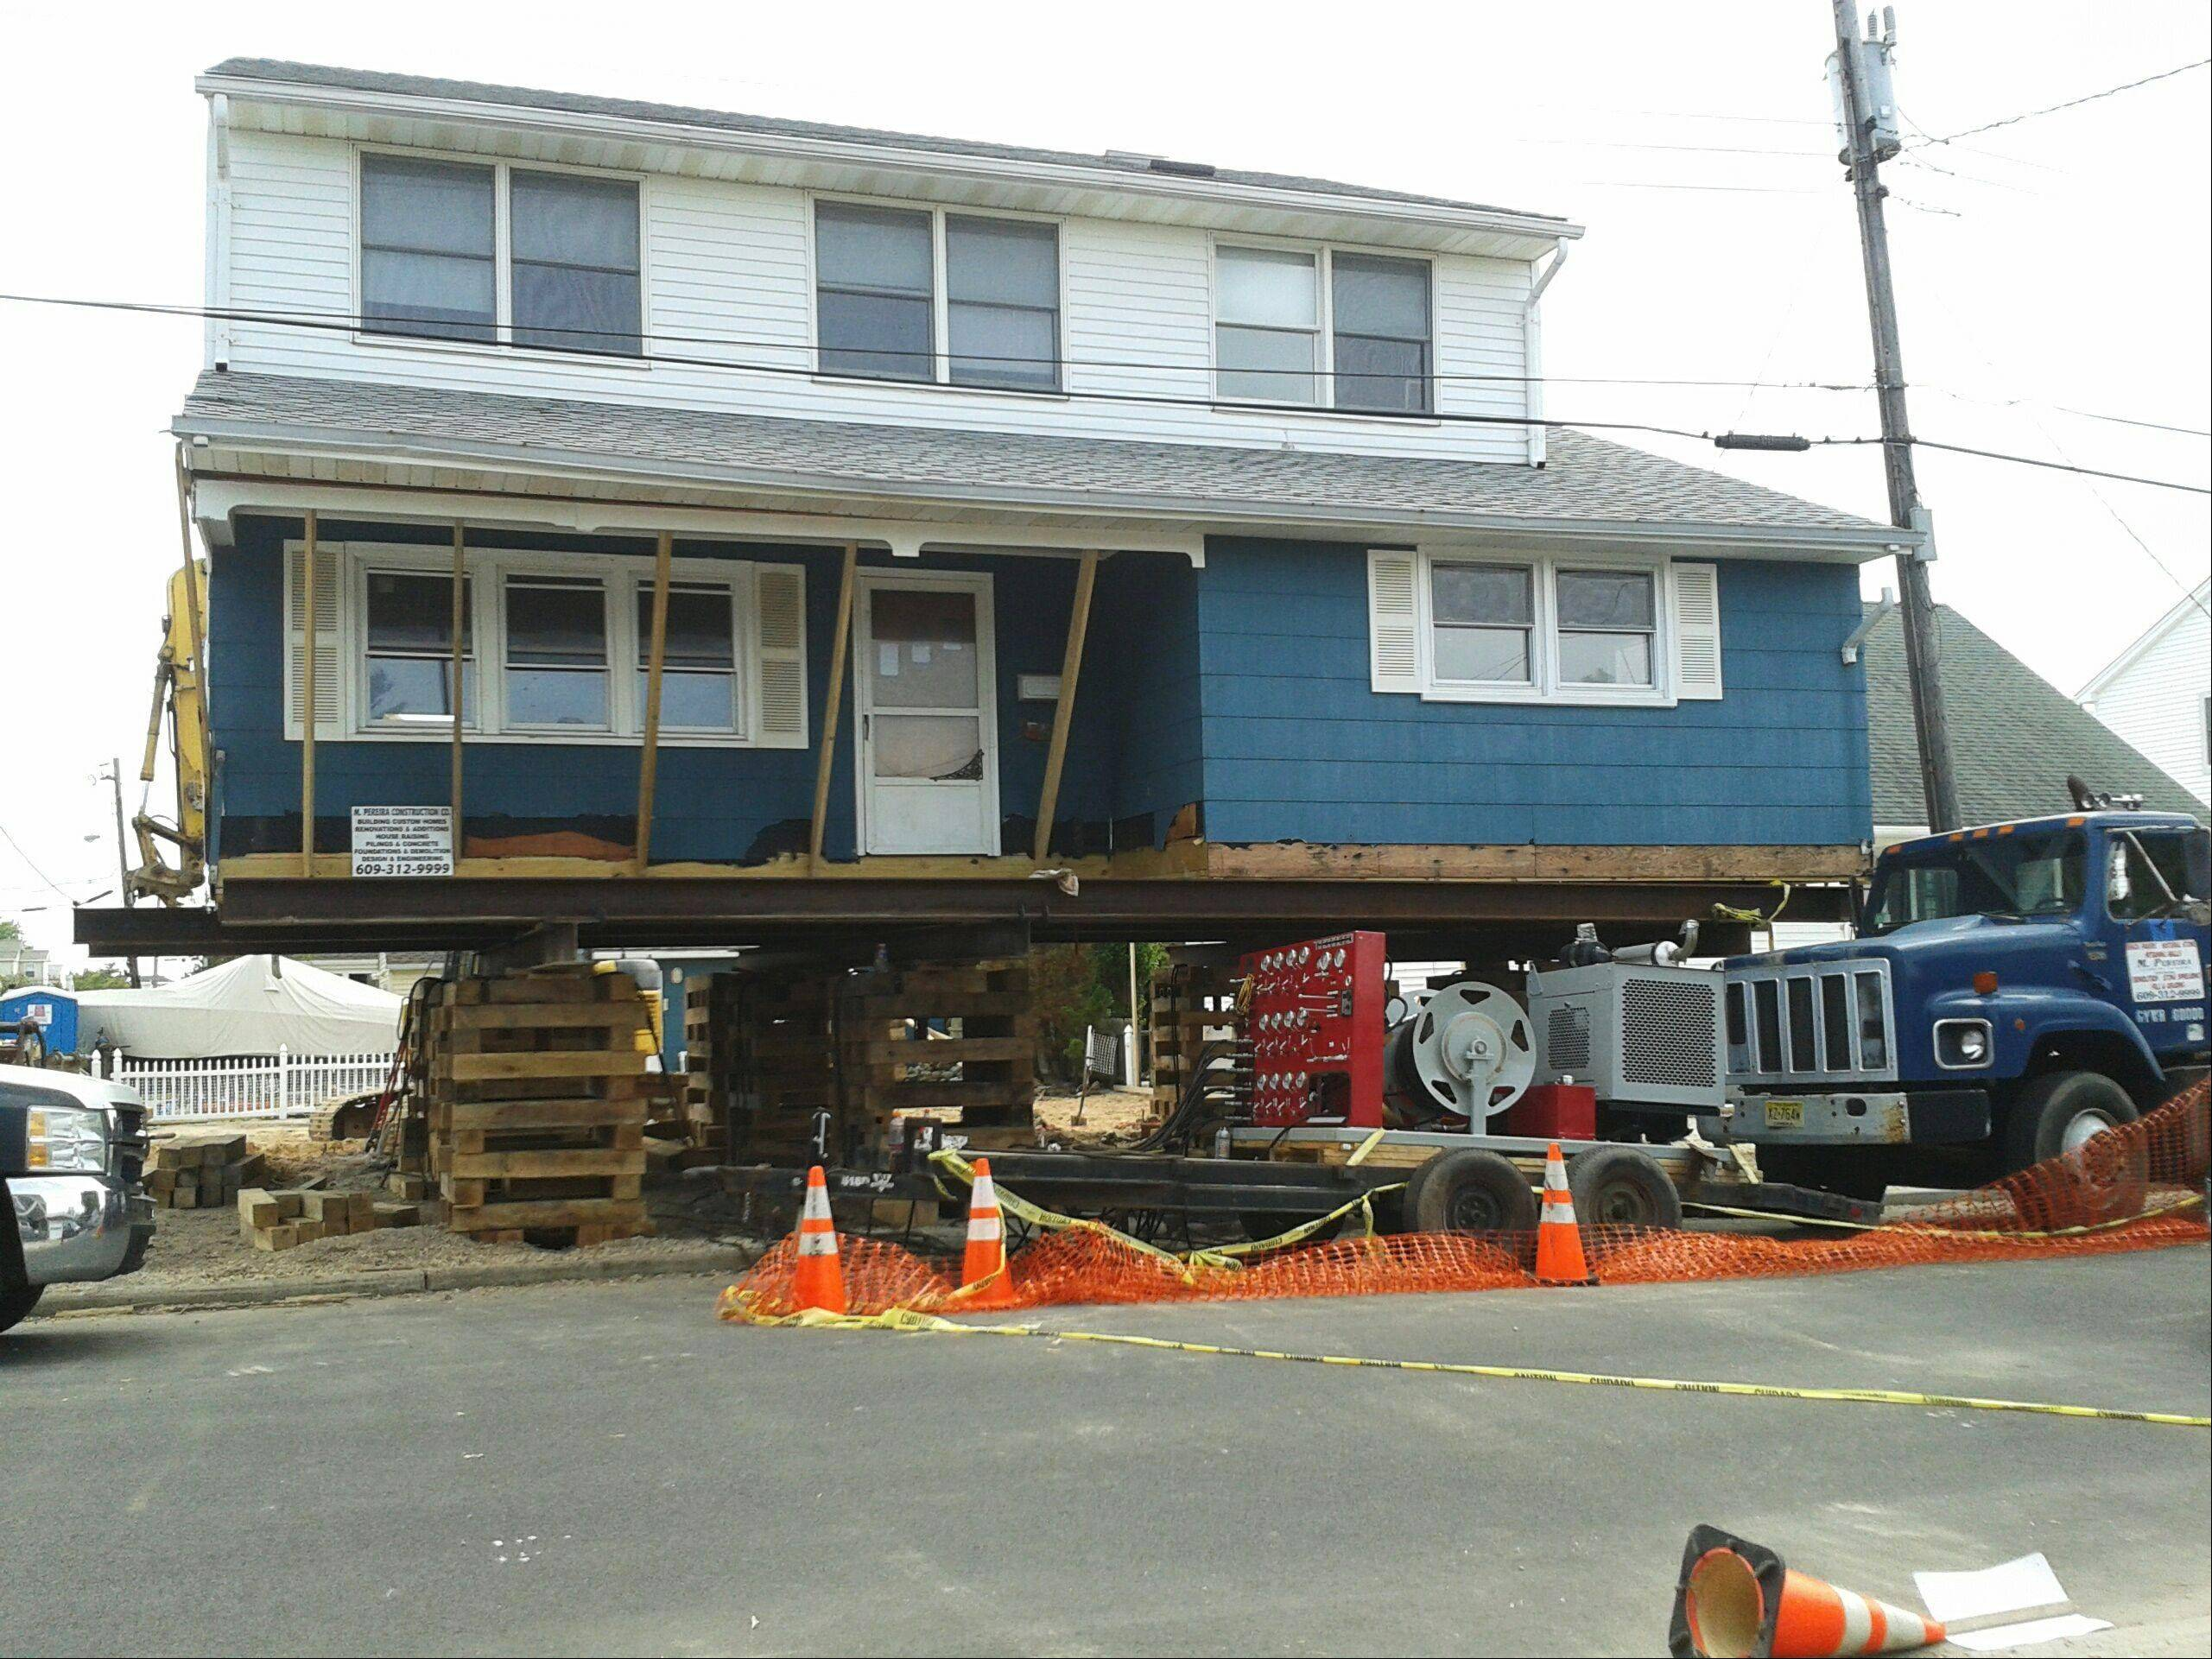 John Paynter�s vacation home in Long Beach Island, N.J., was raised after tropical storm Sandy and now stands 13 feet higher than it did before.